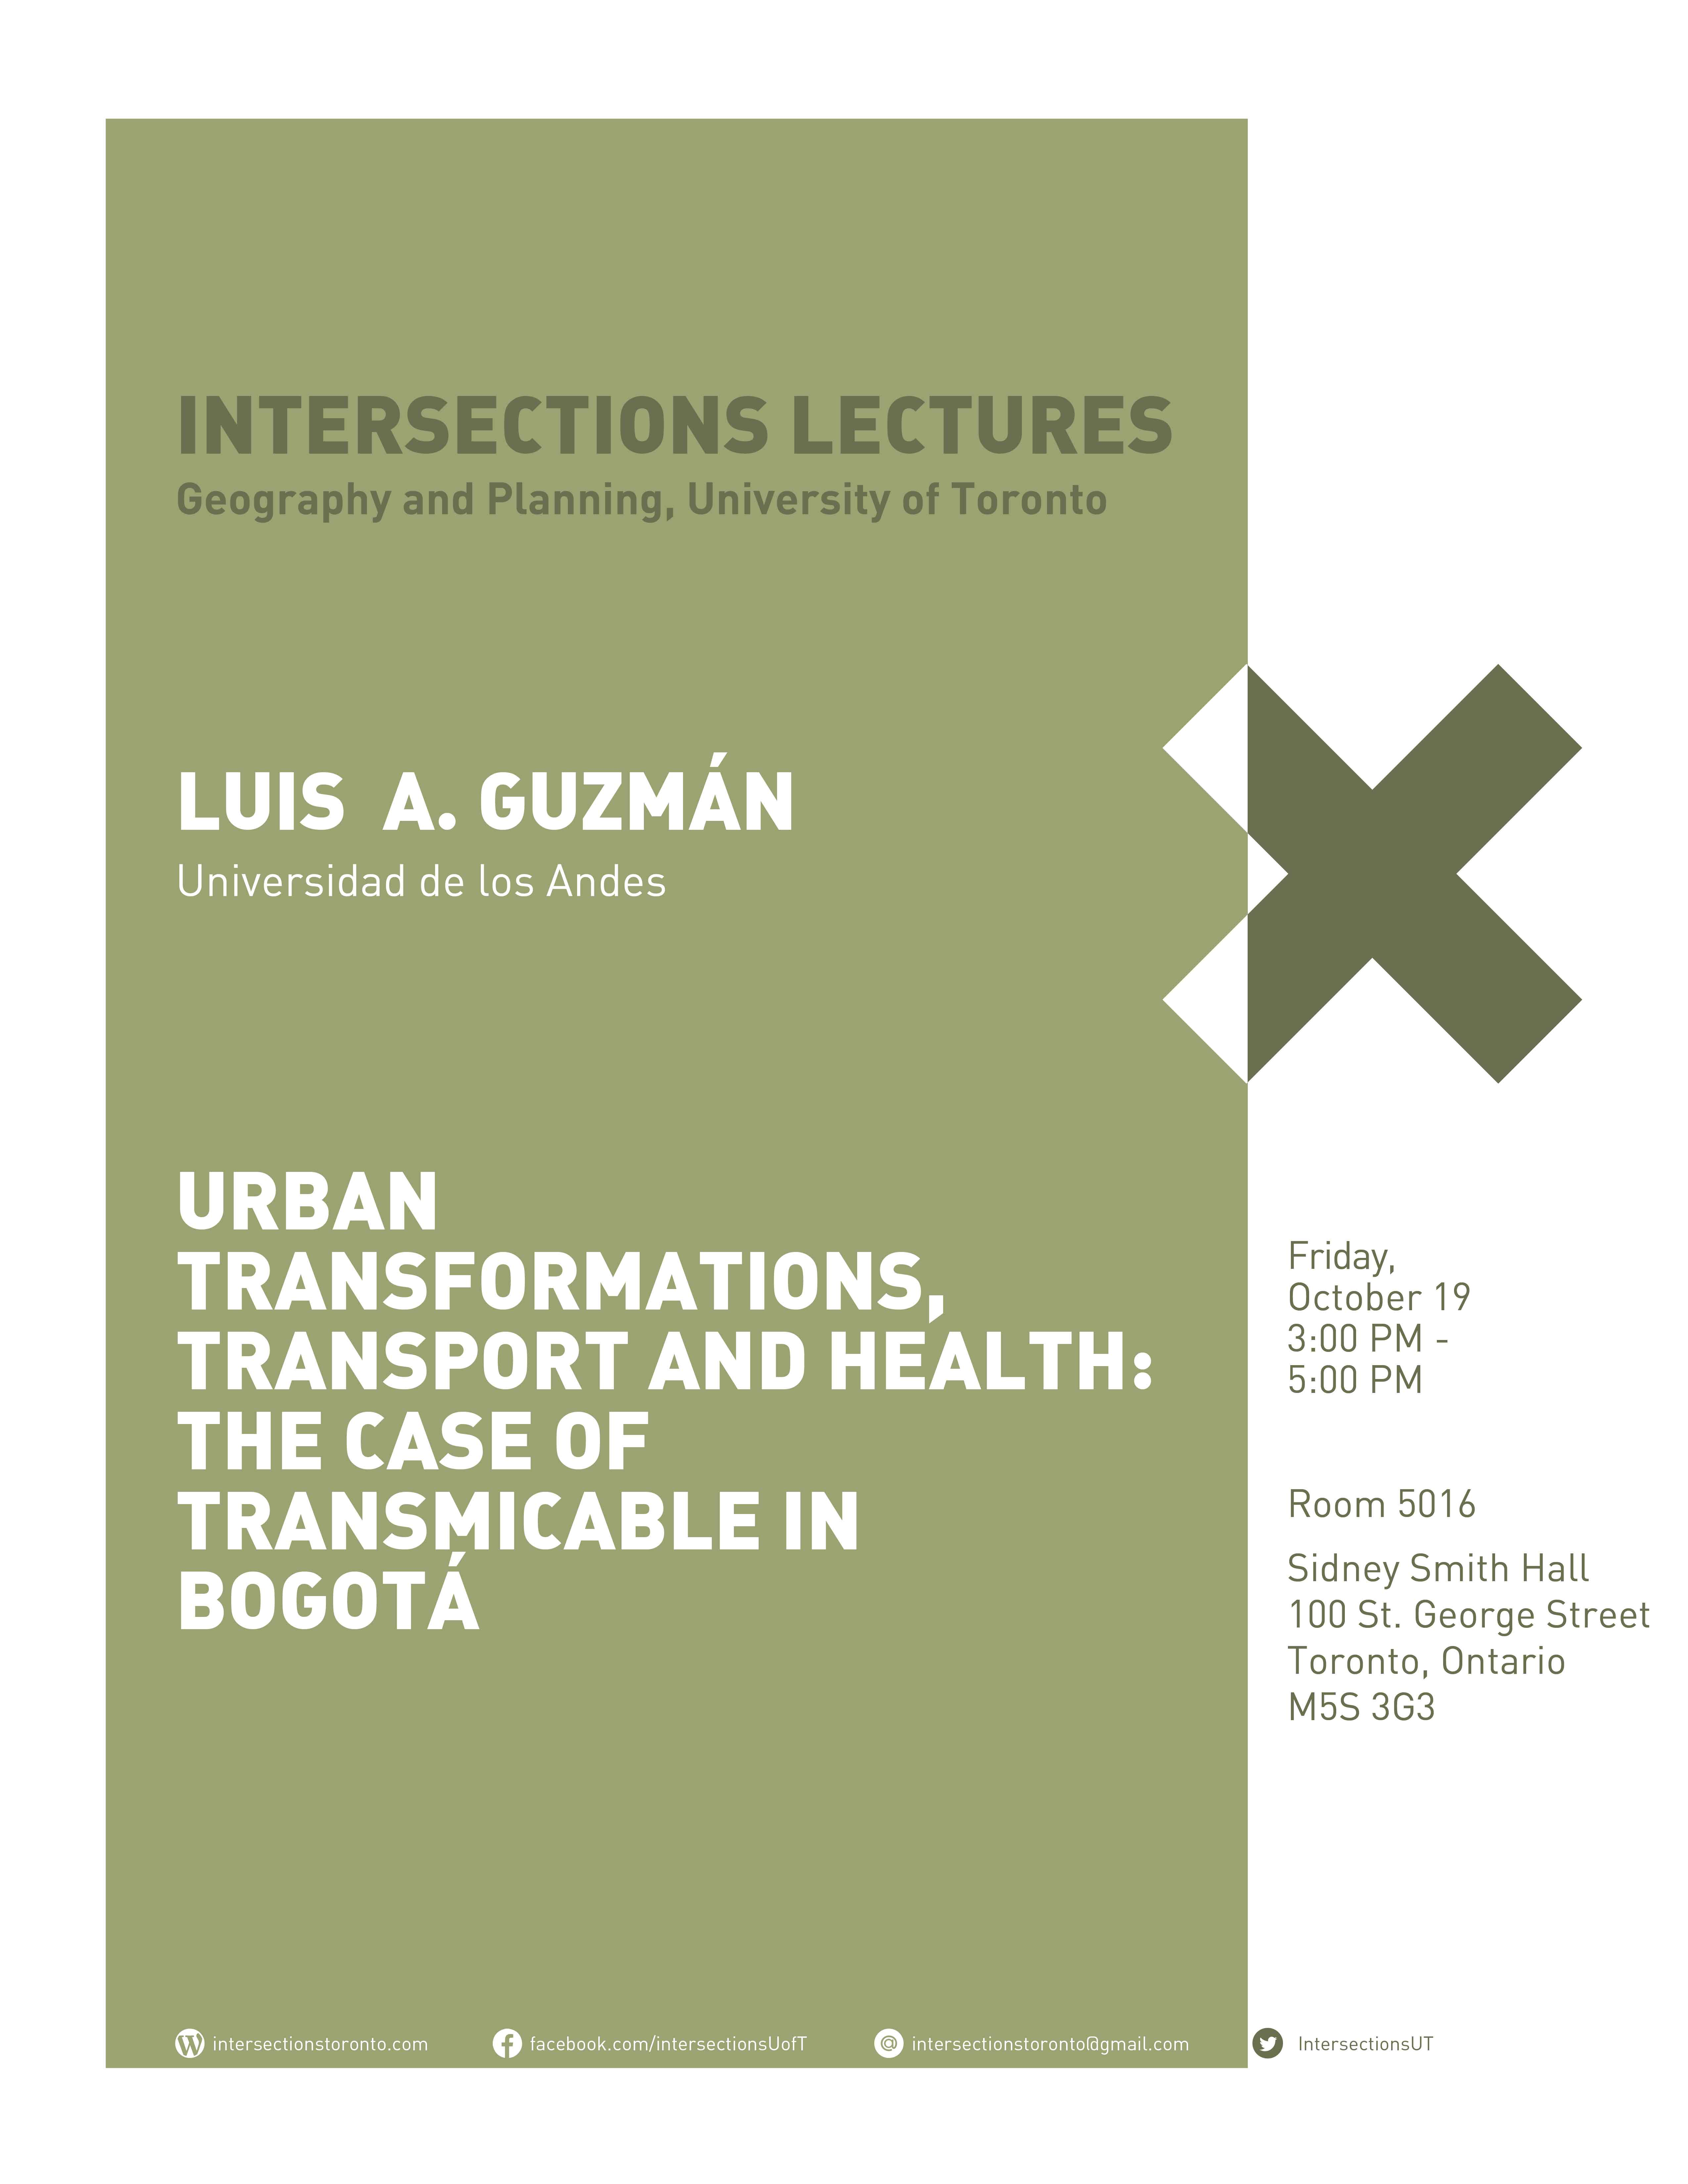 Intersections 2018-19 Posters_Luis A. Guzmán